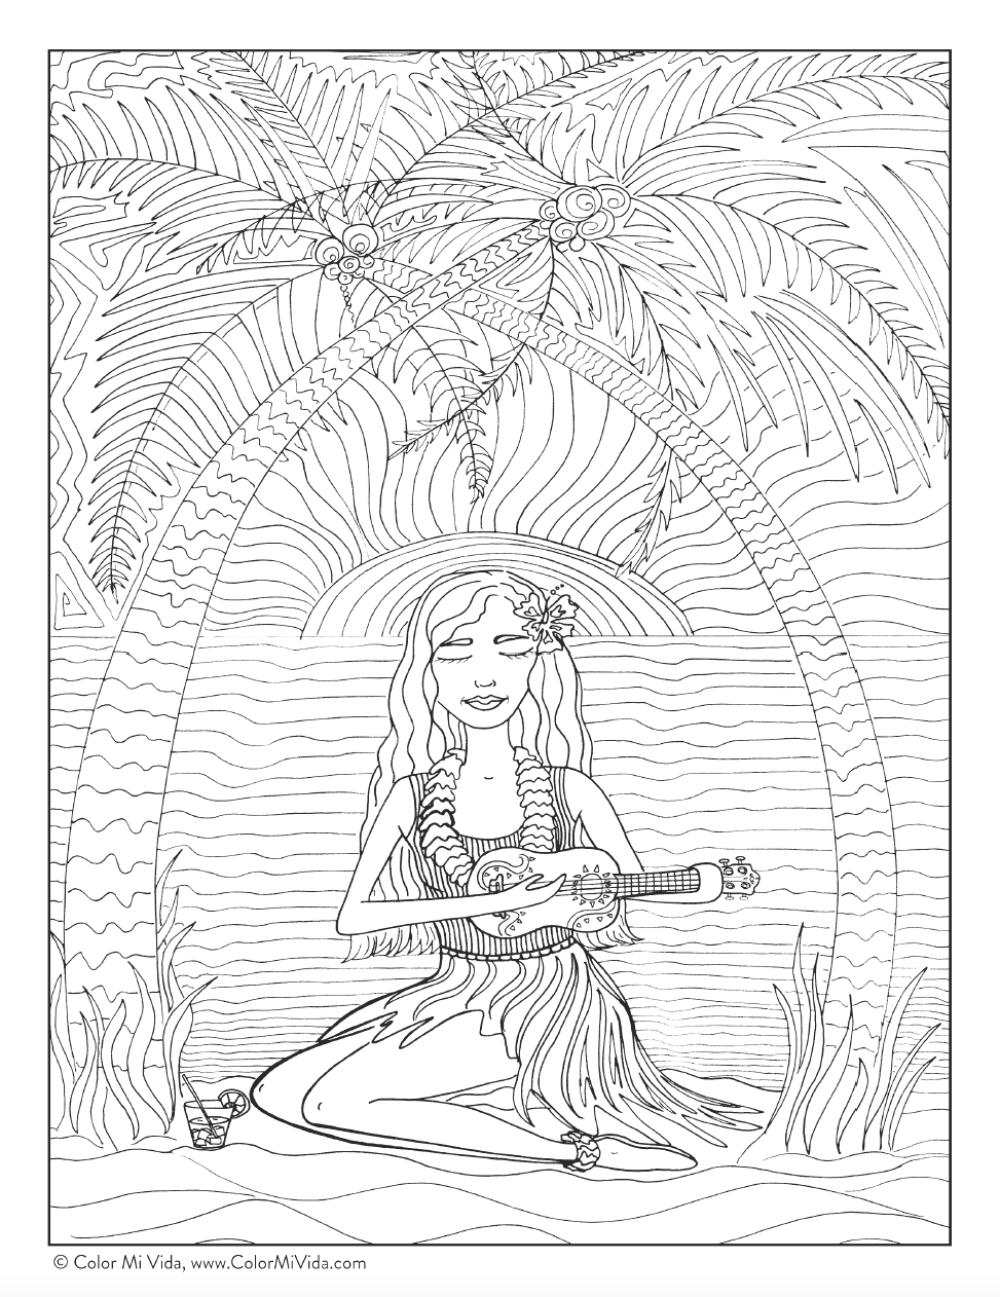 Color Mi Vida Free Coloring Page for Adults